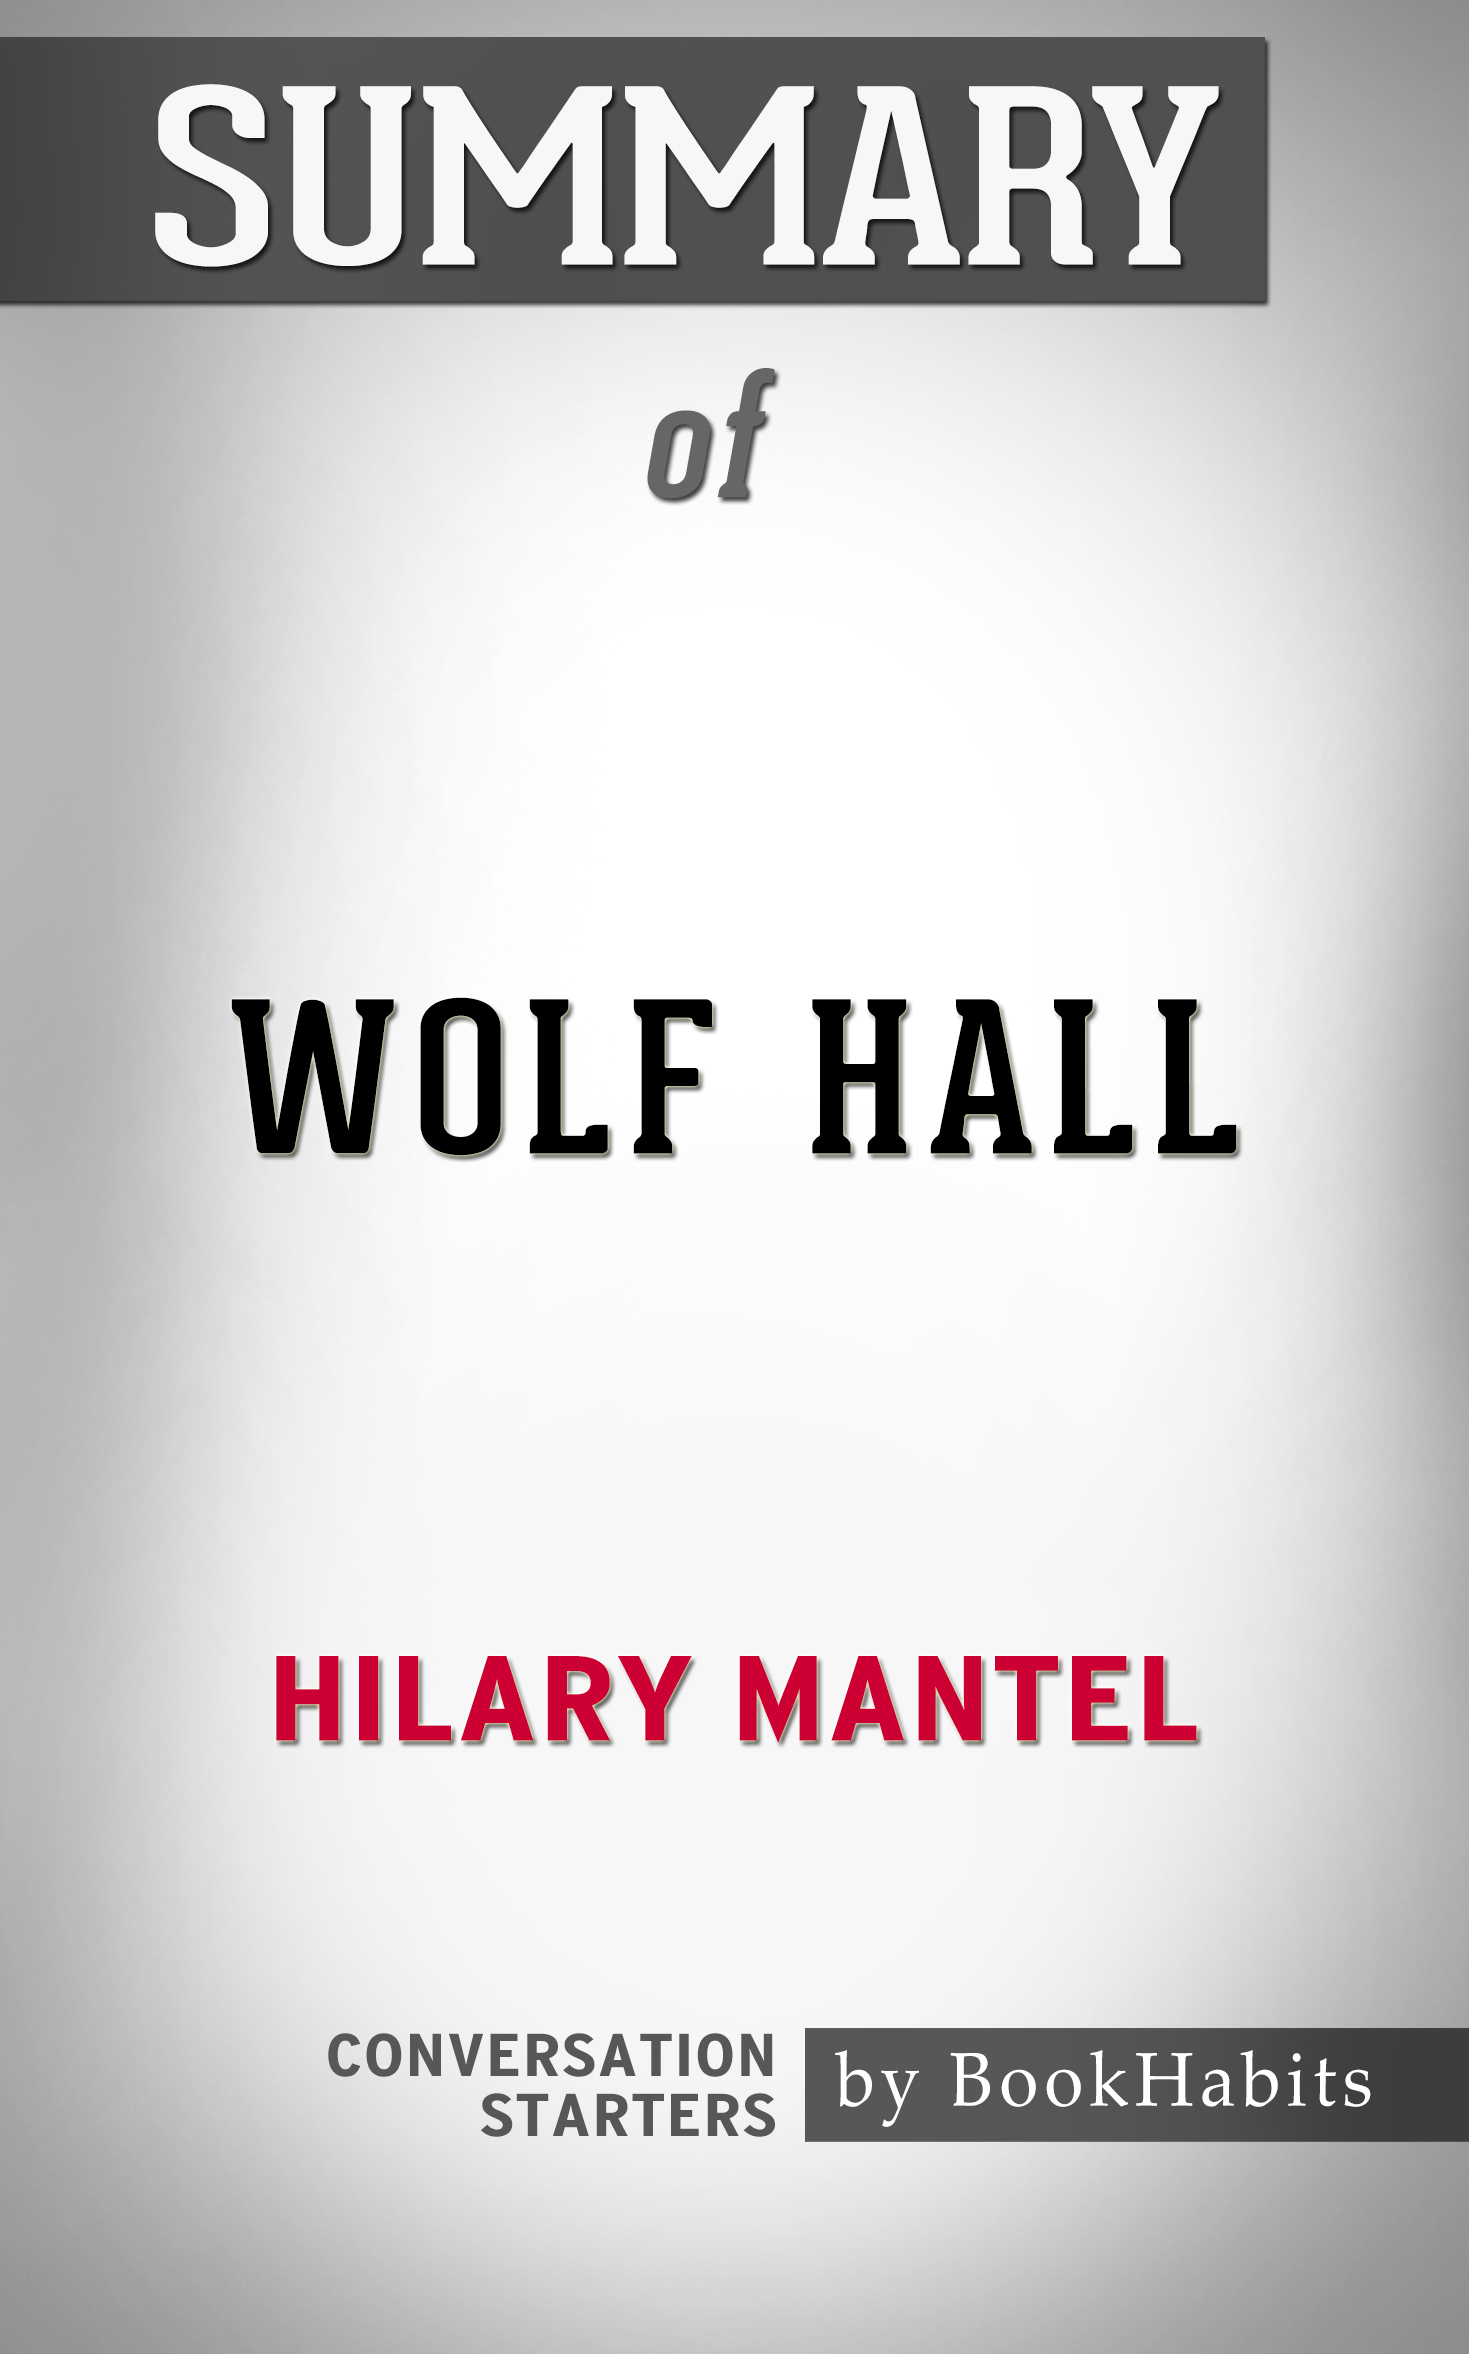 Wolf hall mantel summary